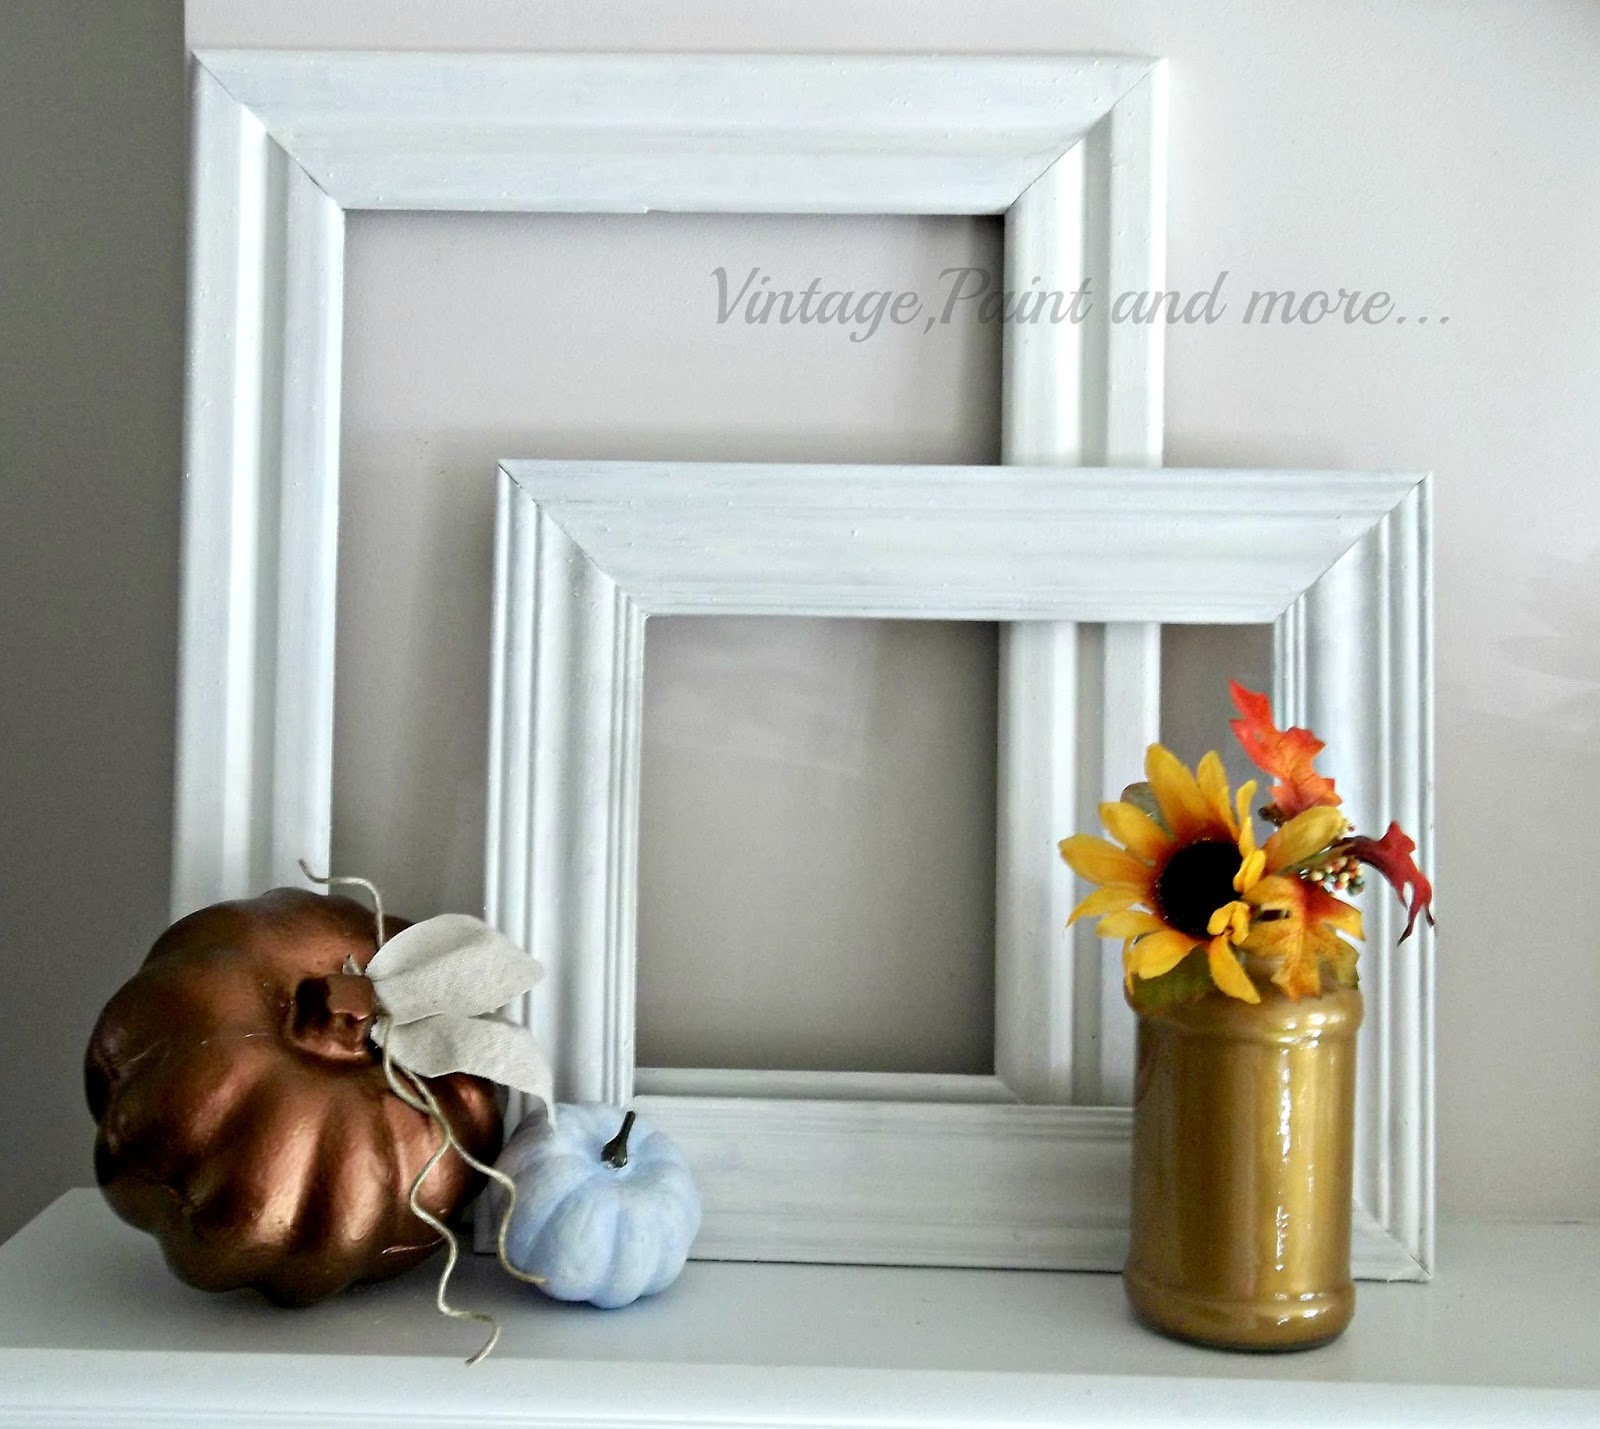 Vintage, Paint and more... metallic colors of fall, vintage fall decor, painted fall decor